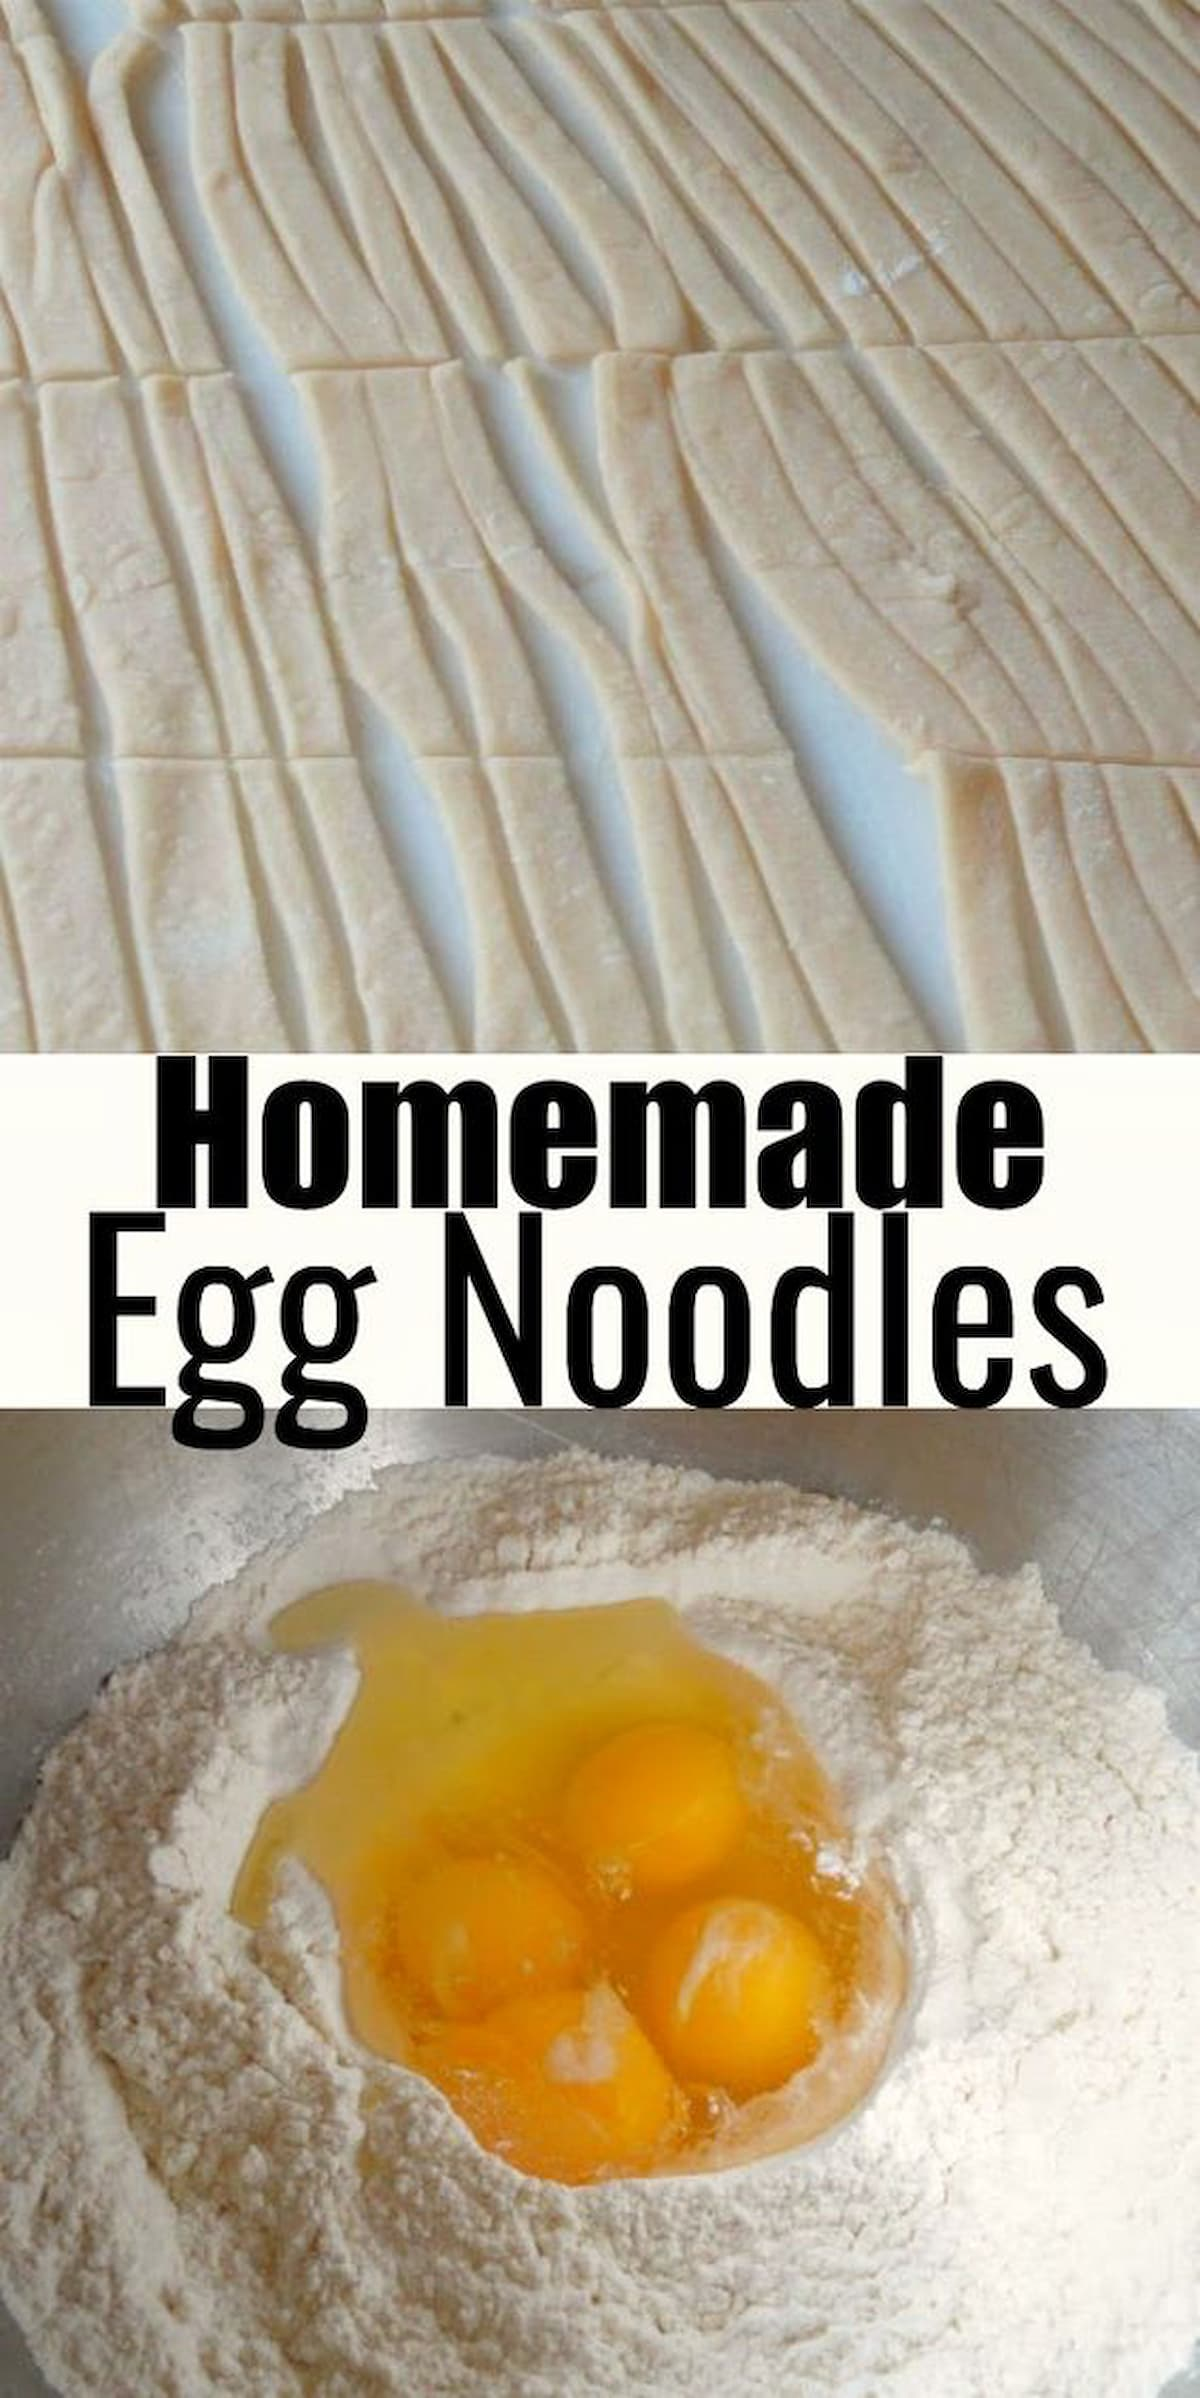 Homemade Egg Noodles in the top photo. The bottom photo is a bowl of flour with 4 Egg in the Center. Black Text Homemade Egg Noodles between the two photos